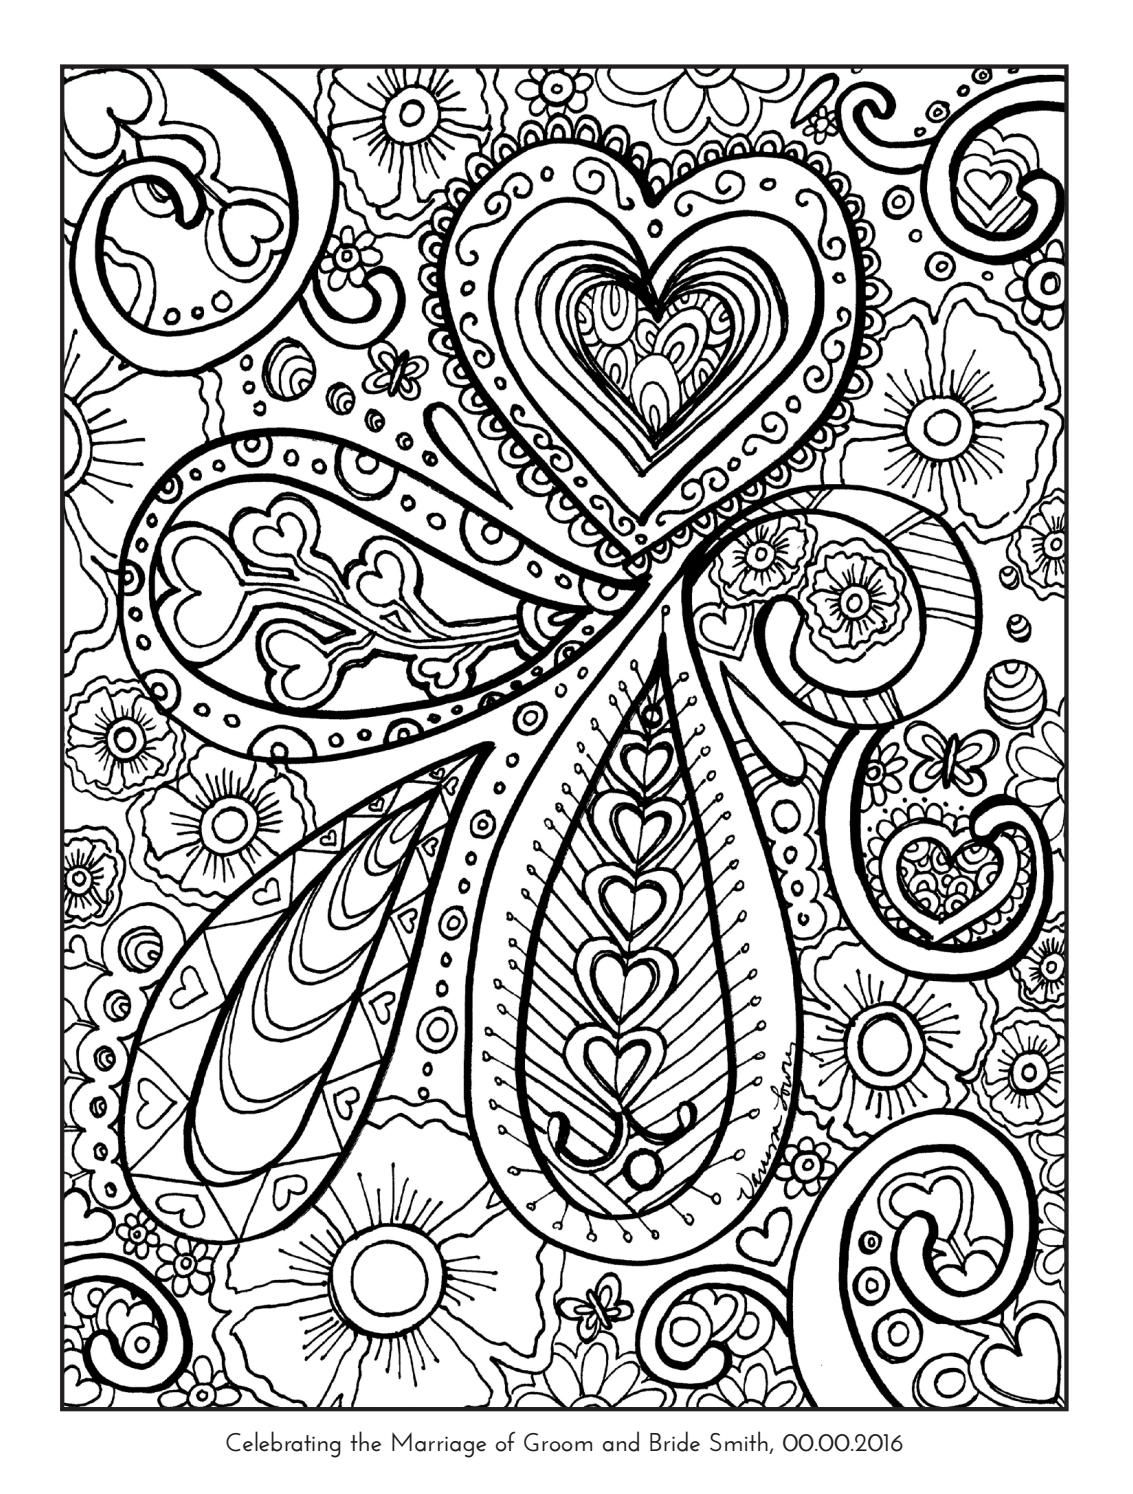 Coloring book wedding example june2016 | Favours, Coloring books and ...